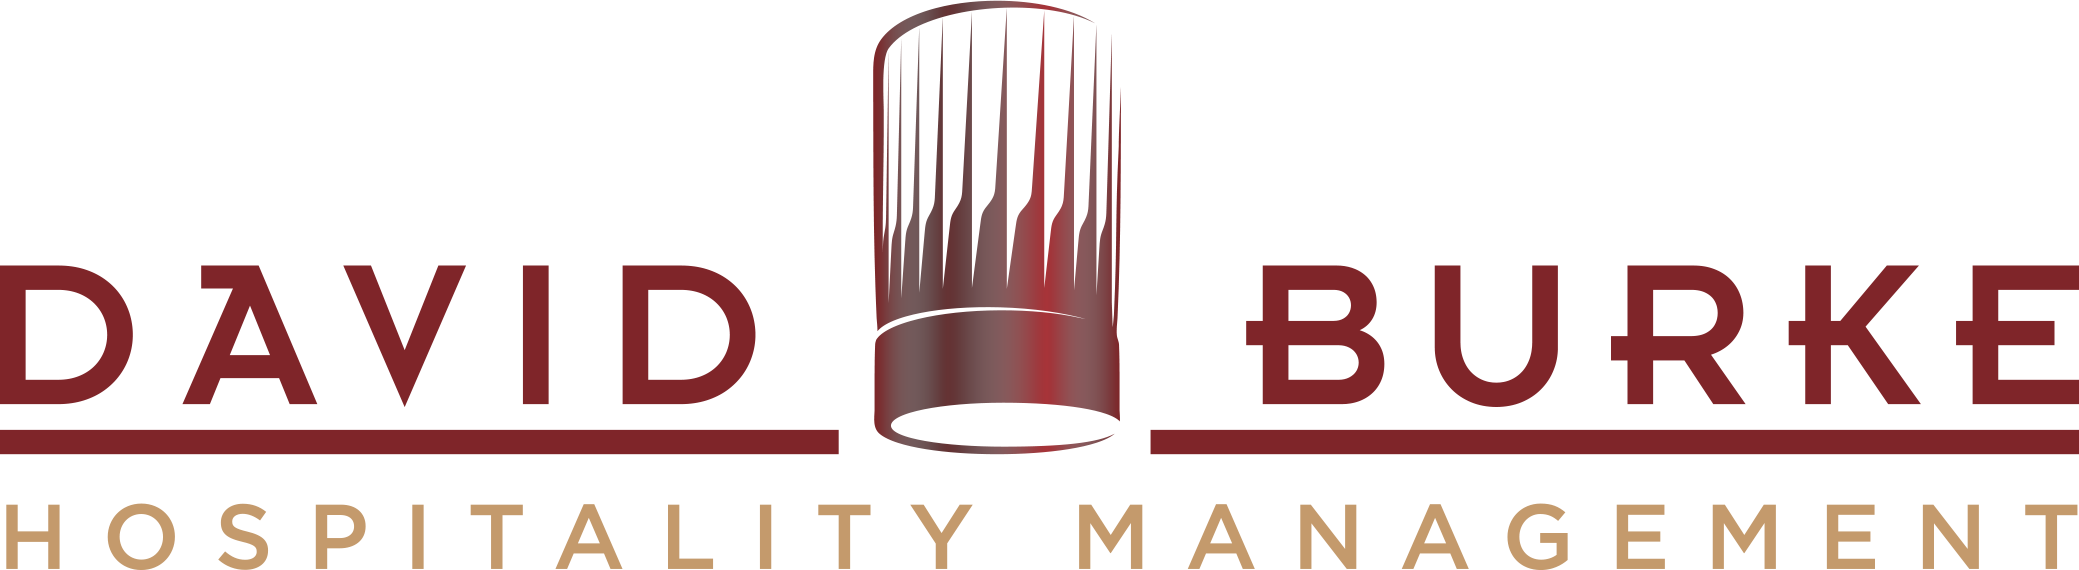 David Burke Hospitality Management Logo